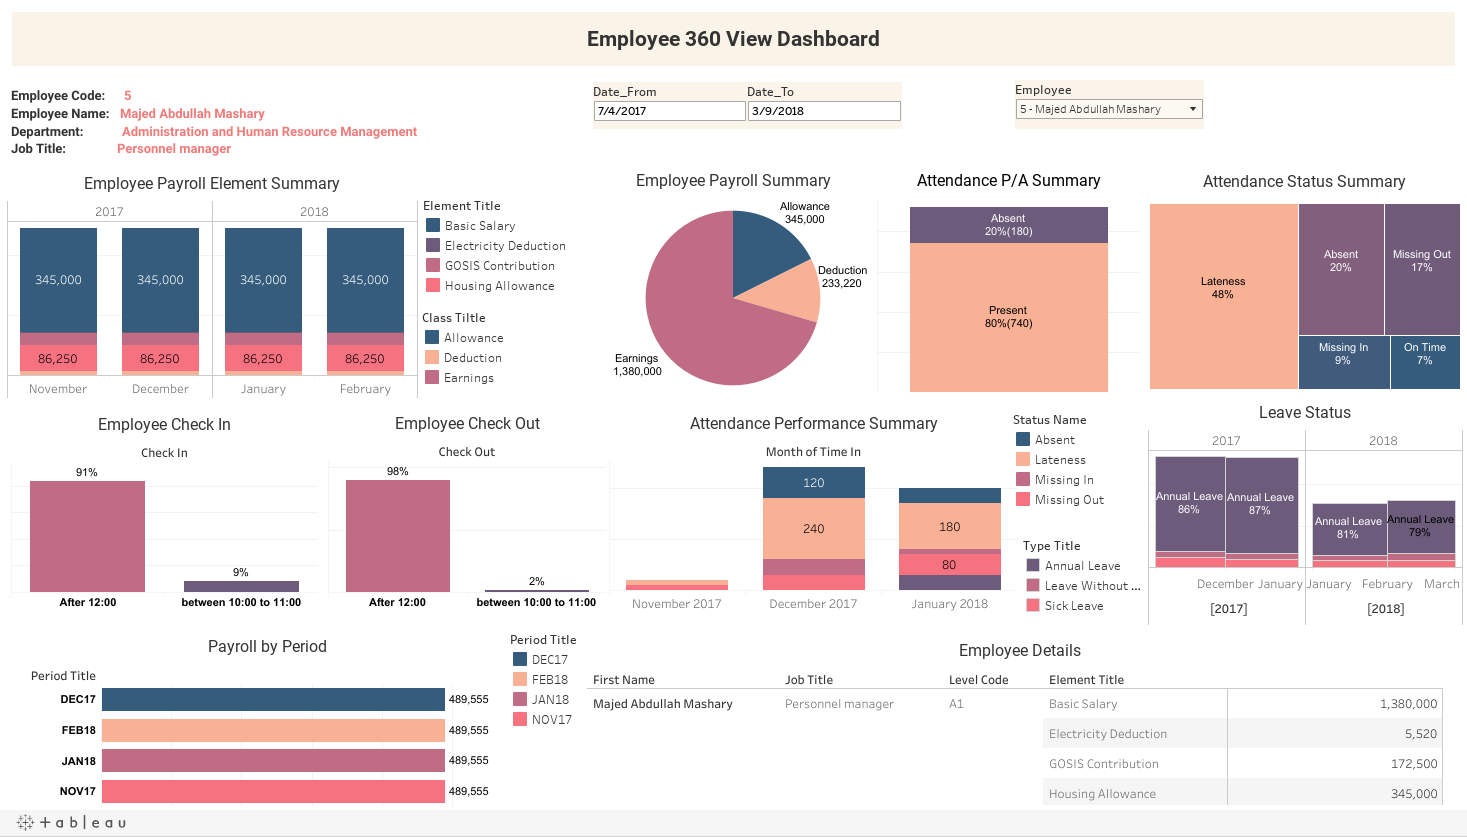 Employee 360 View Dashboard